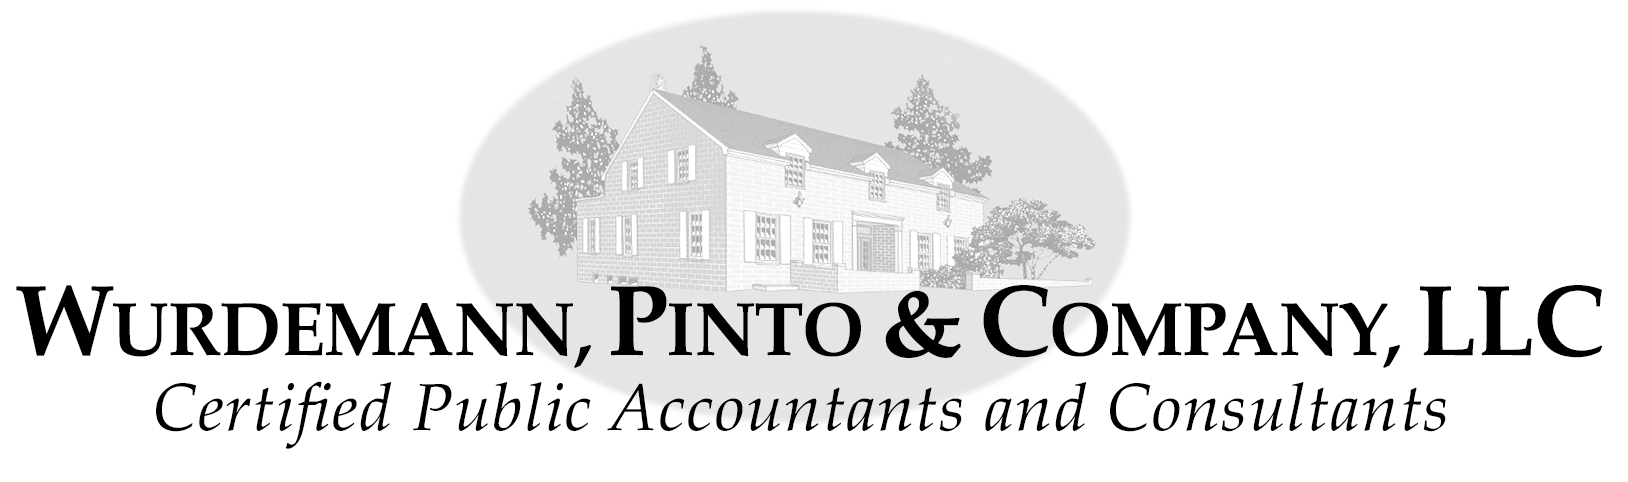 Hackensack, NJ Accounting Firm | Business Services | Wurdemann, Pinto & Co. LLC